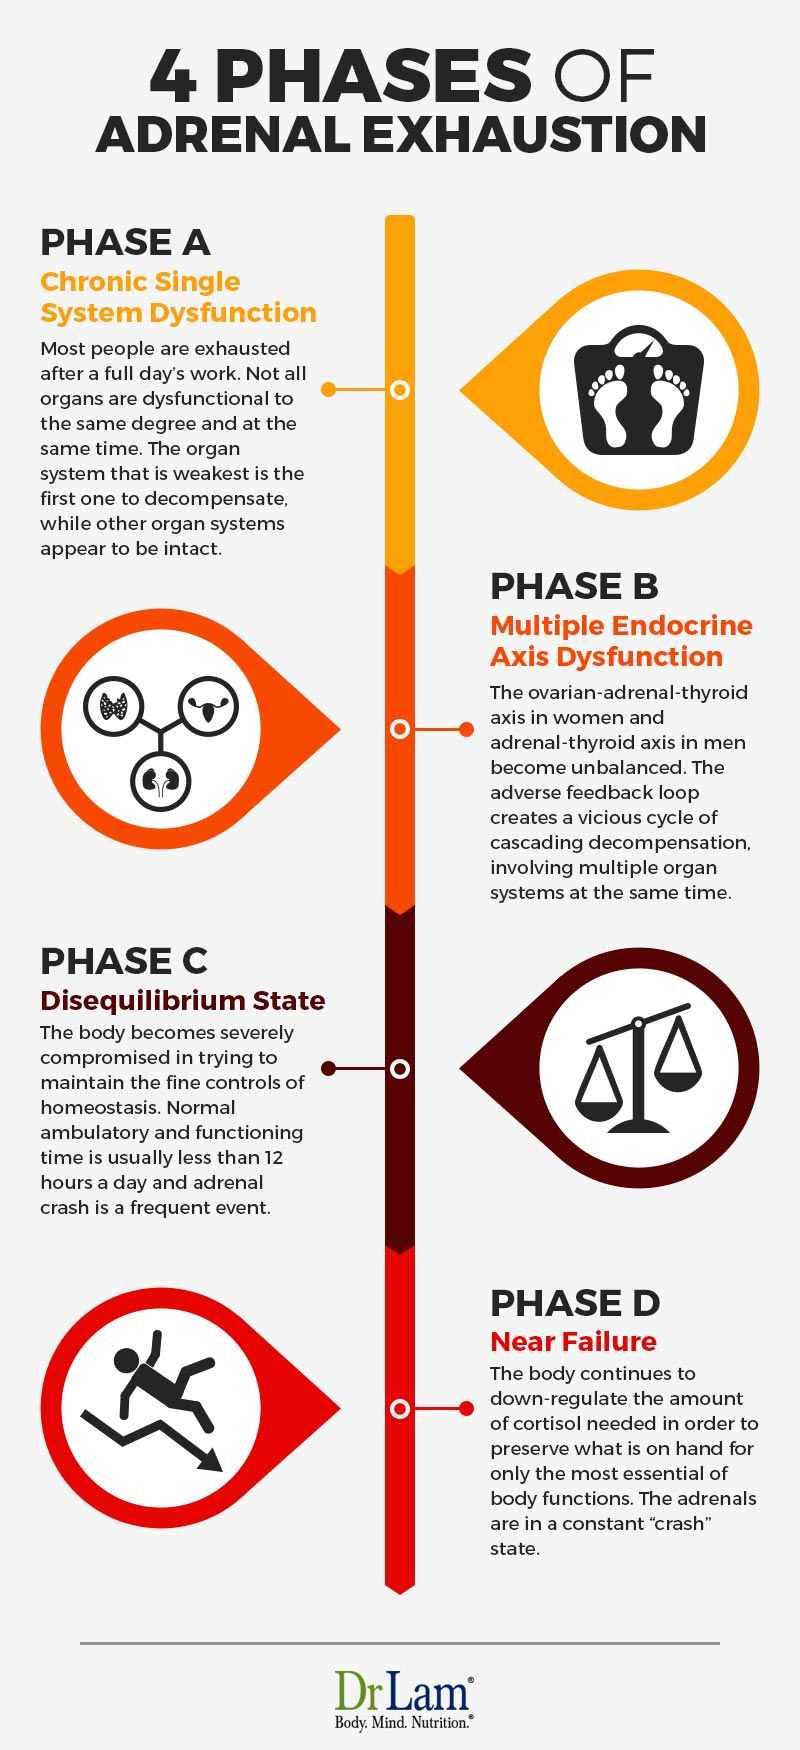 Check out this easy to understand infographic about the 4 phases of Adrenal Exhaustion